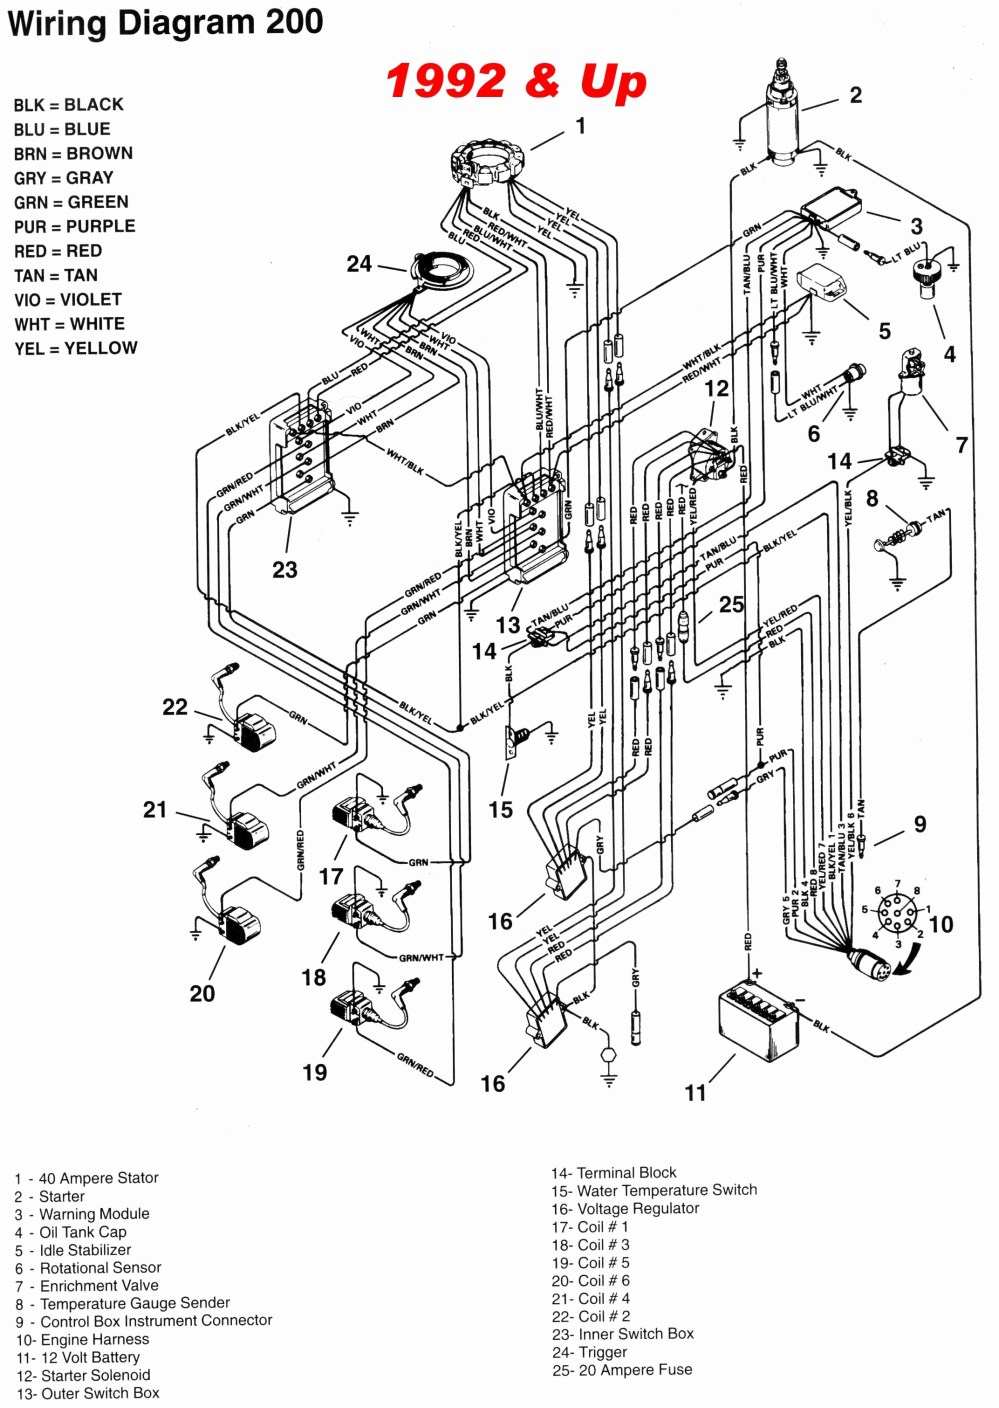 medium resolution of yamaha ttr 225 wiring diagram wiring diagram paper 03 yamaha ttr 225 wiring